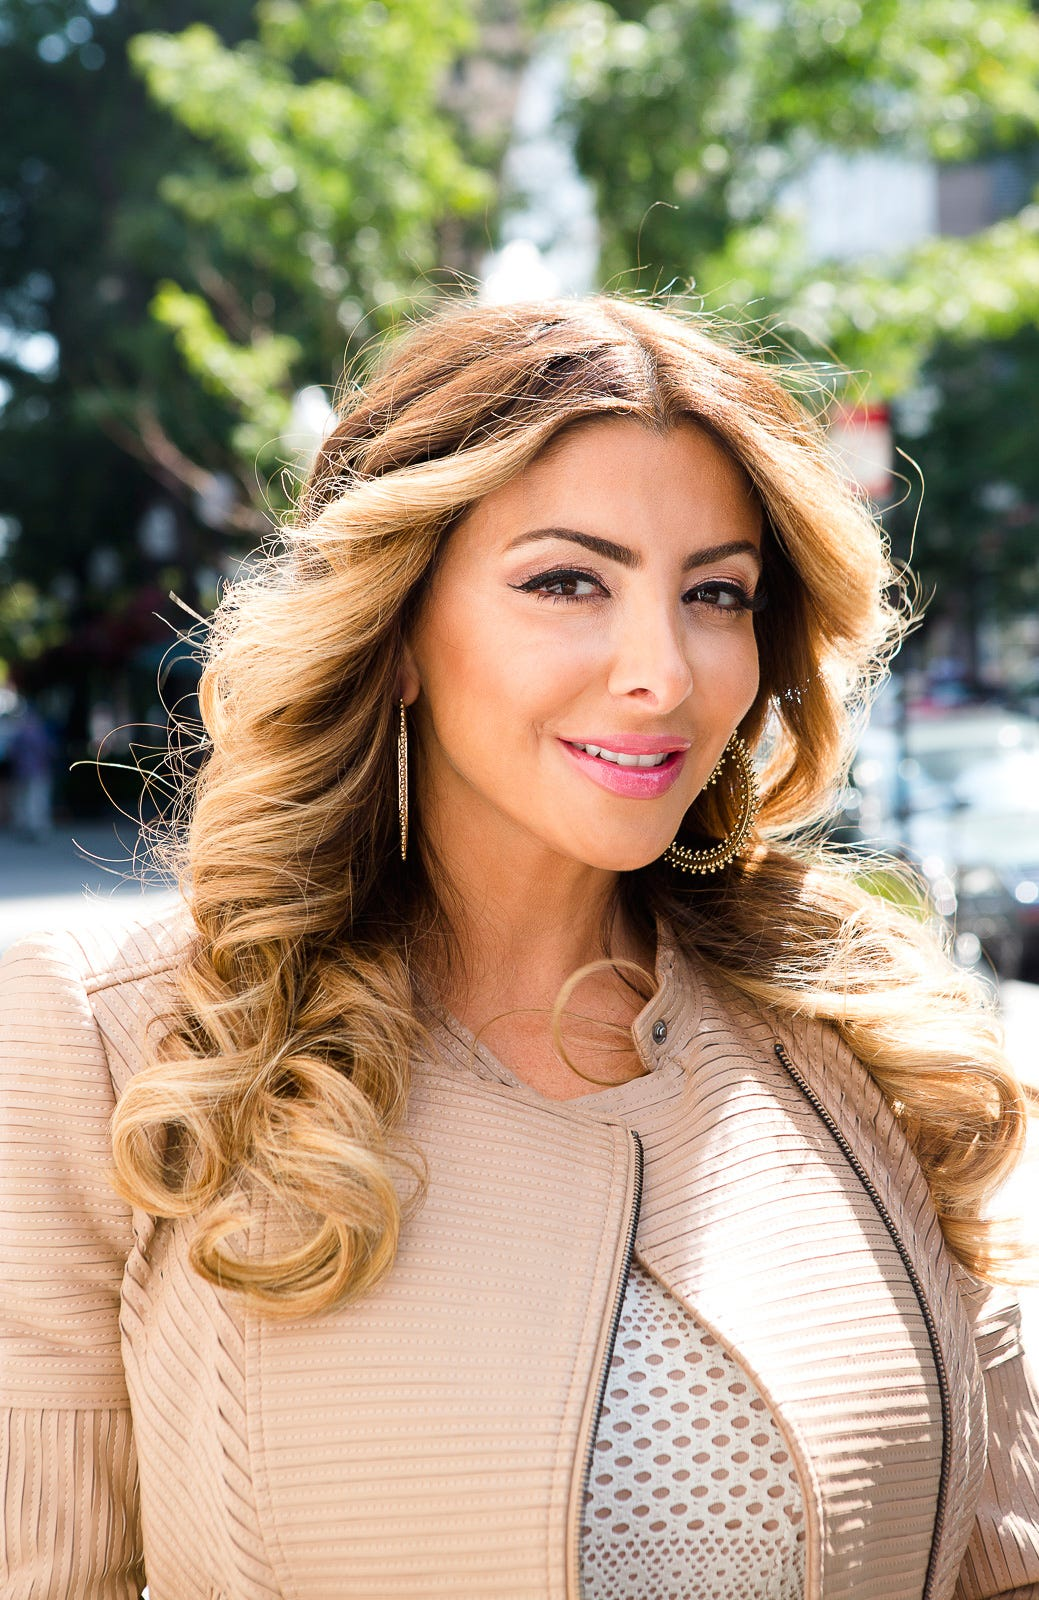 Larsa Pippen nudes (93 photo), young Selfie, YouTube, cleavage 2016